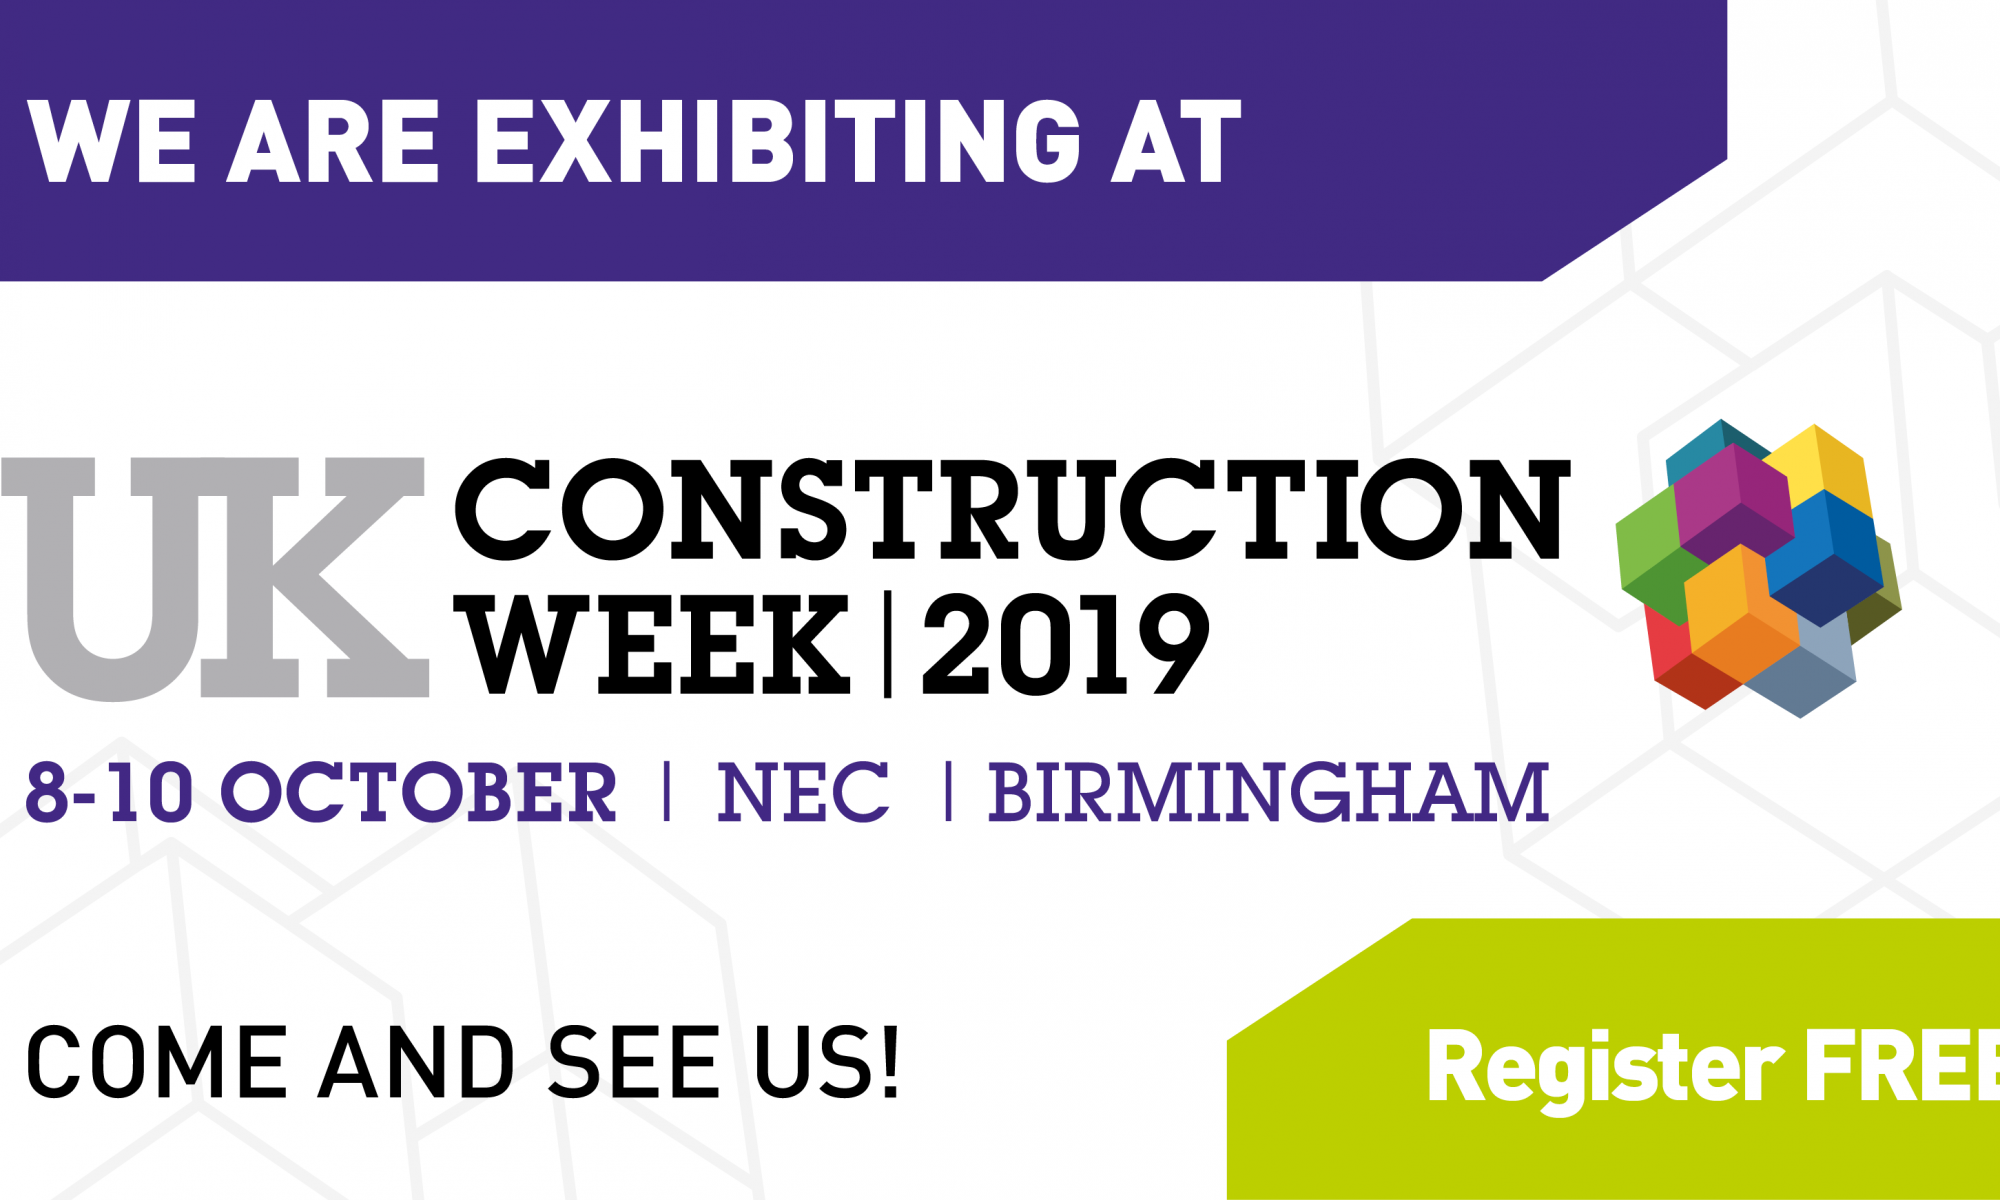 Visiting UK Construction Week at the NEC